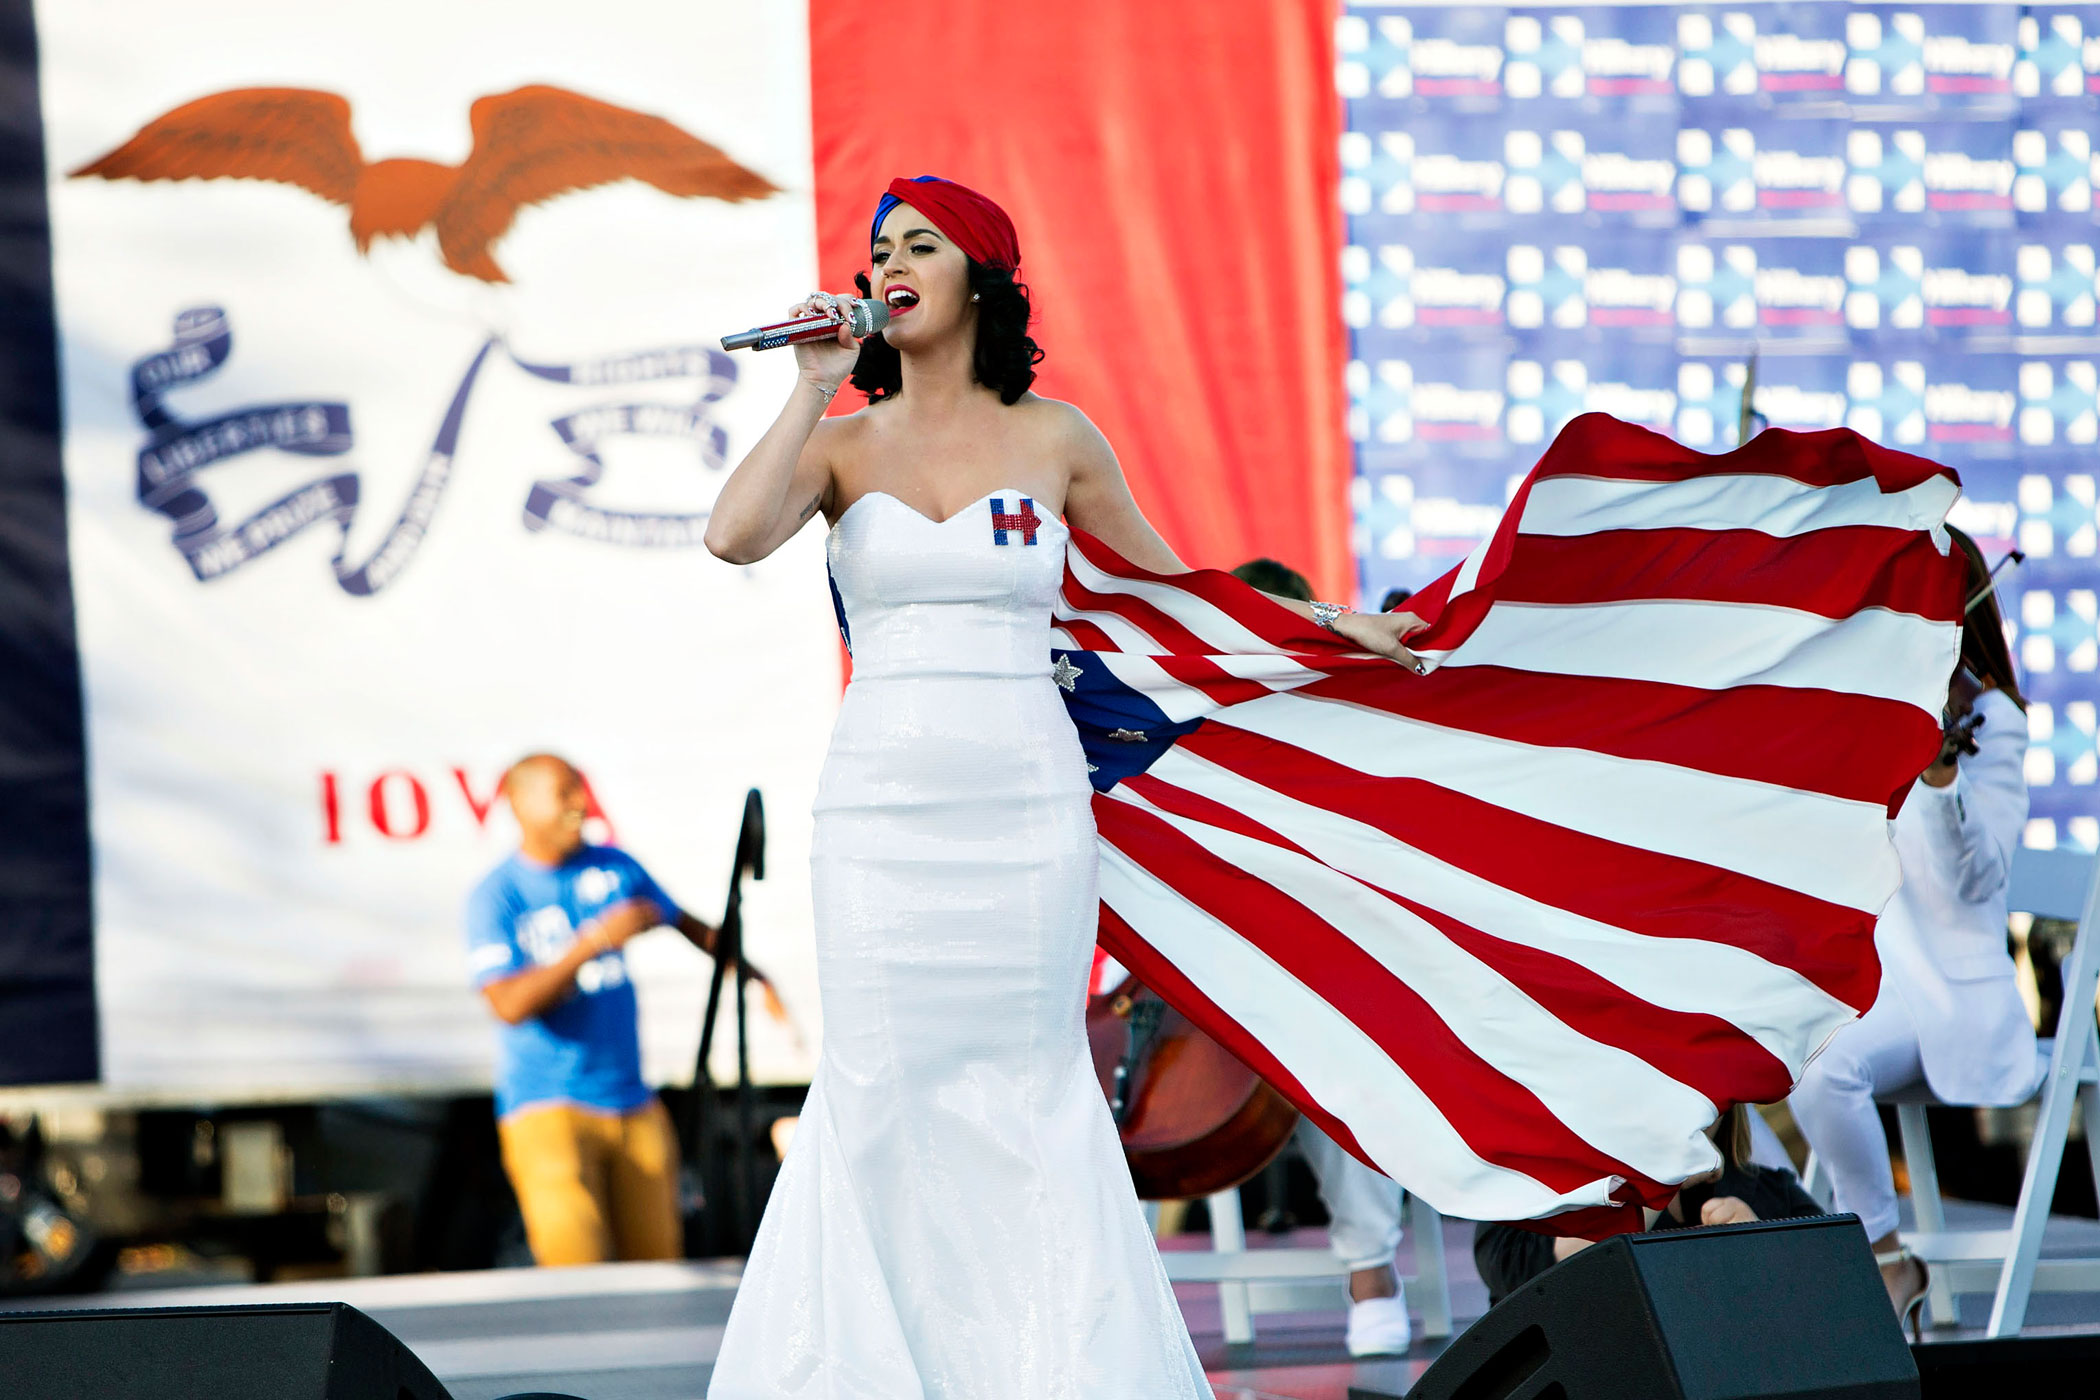 Singer Katy Perry performed during a rally for Hillary Clinton, who she publicly supports.